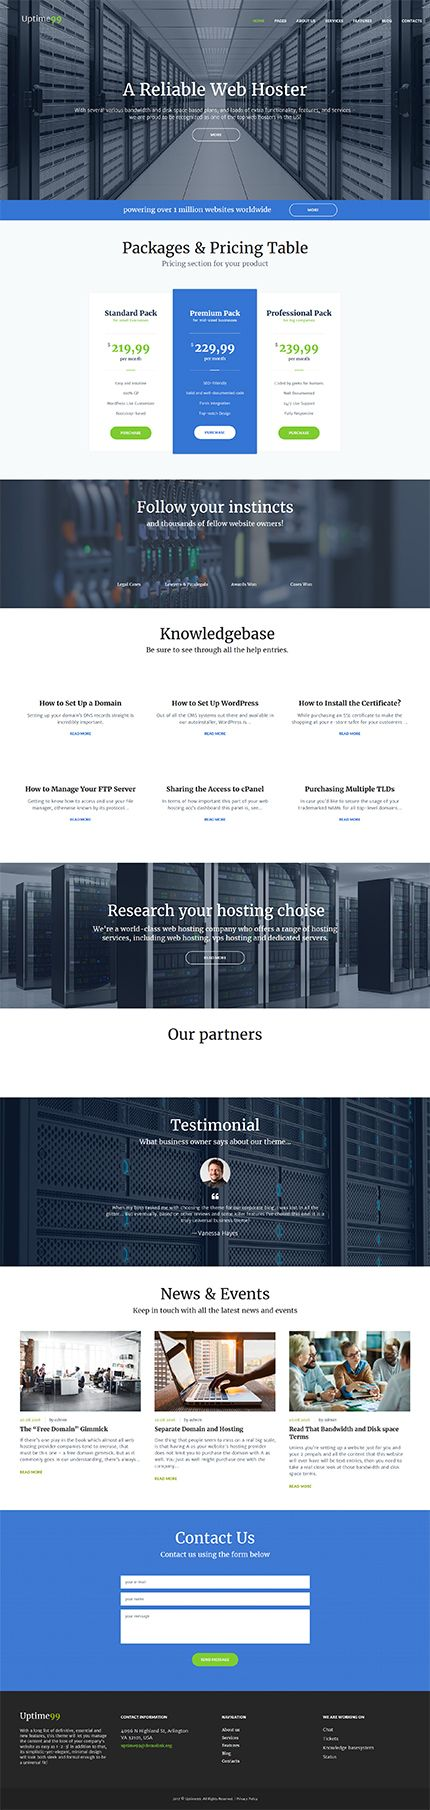 Hosting website inspirations at your coffee break? Browse for more WordPress #templates! // Regular price: $75 // Sources available:.PHP, This theme is widgetized #Hosting #WordPress